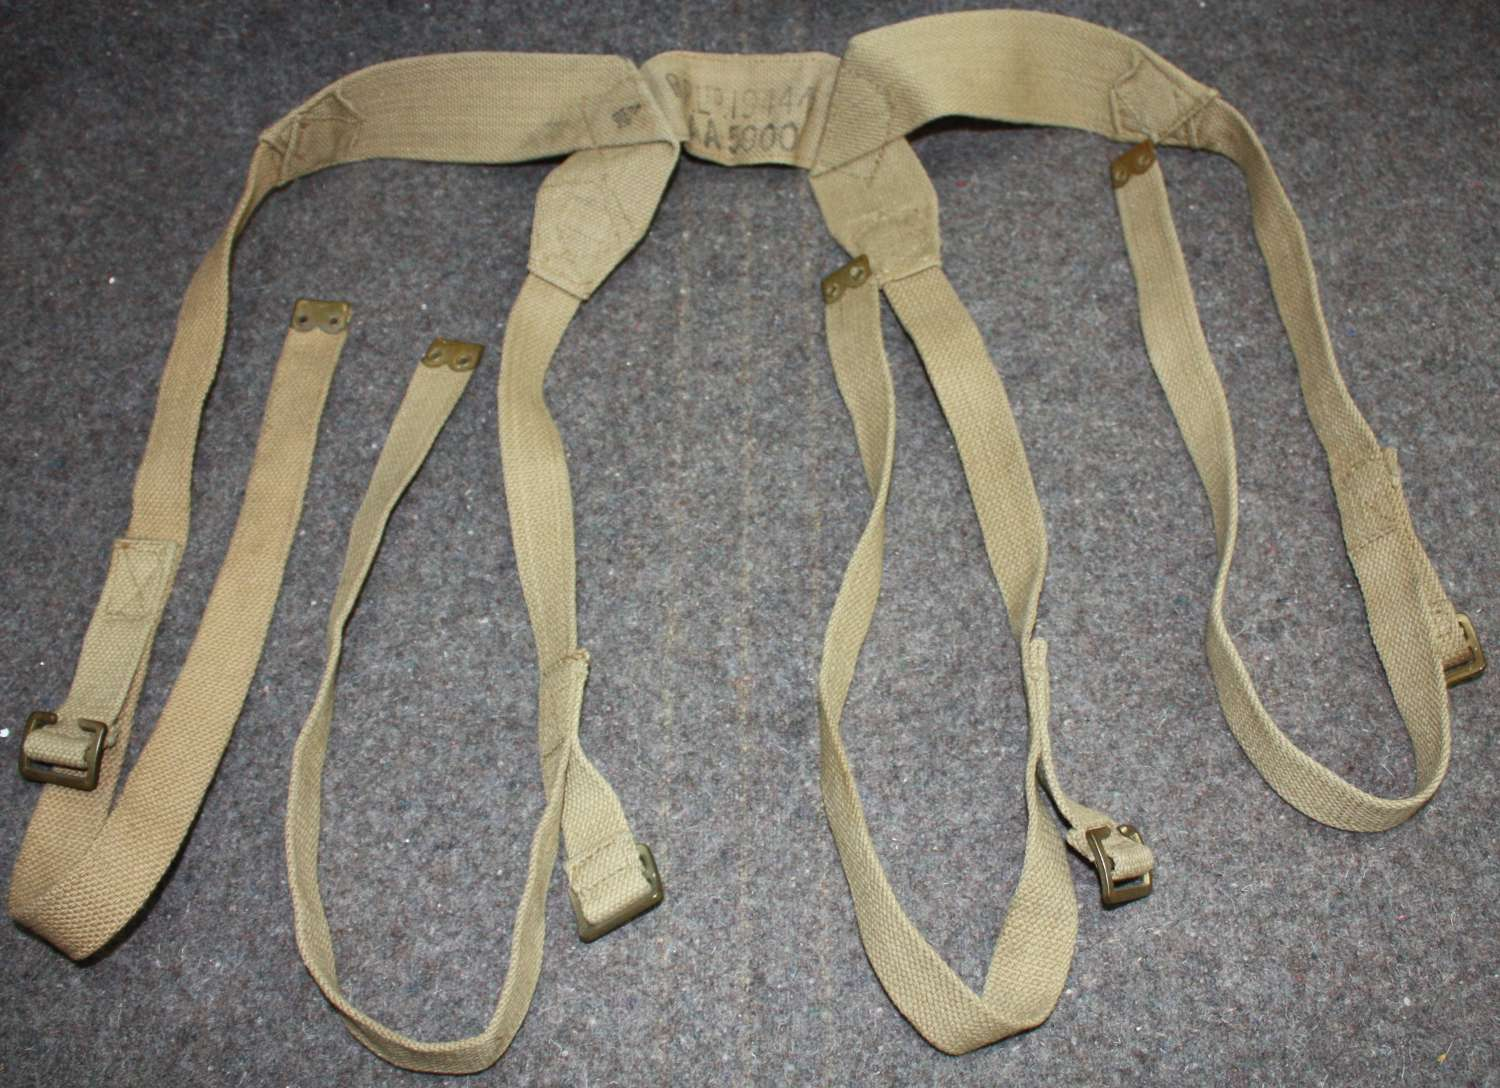 A 1944 DATED LOAD CARRYING STRAPS ( COMMONLY KNOWN BREN TRIPOD STRAPS)